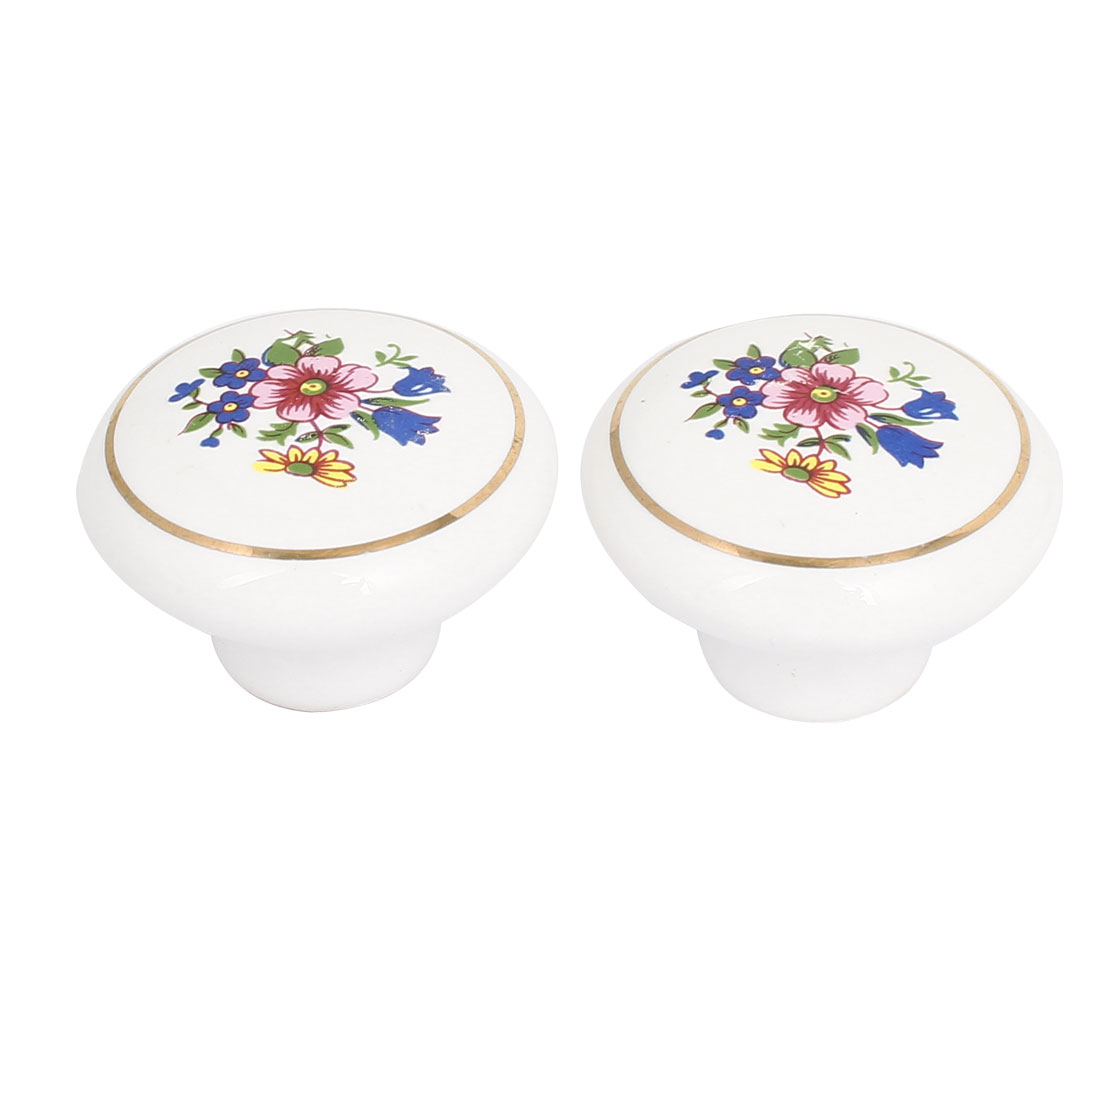 38mm Dia Flower Prints Ceramic Pull Knob Handle White 2pcs for Cabinet Door Drawer